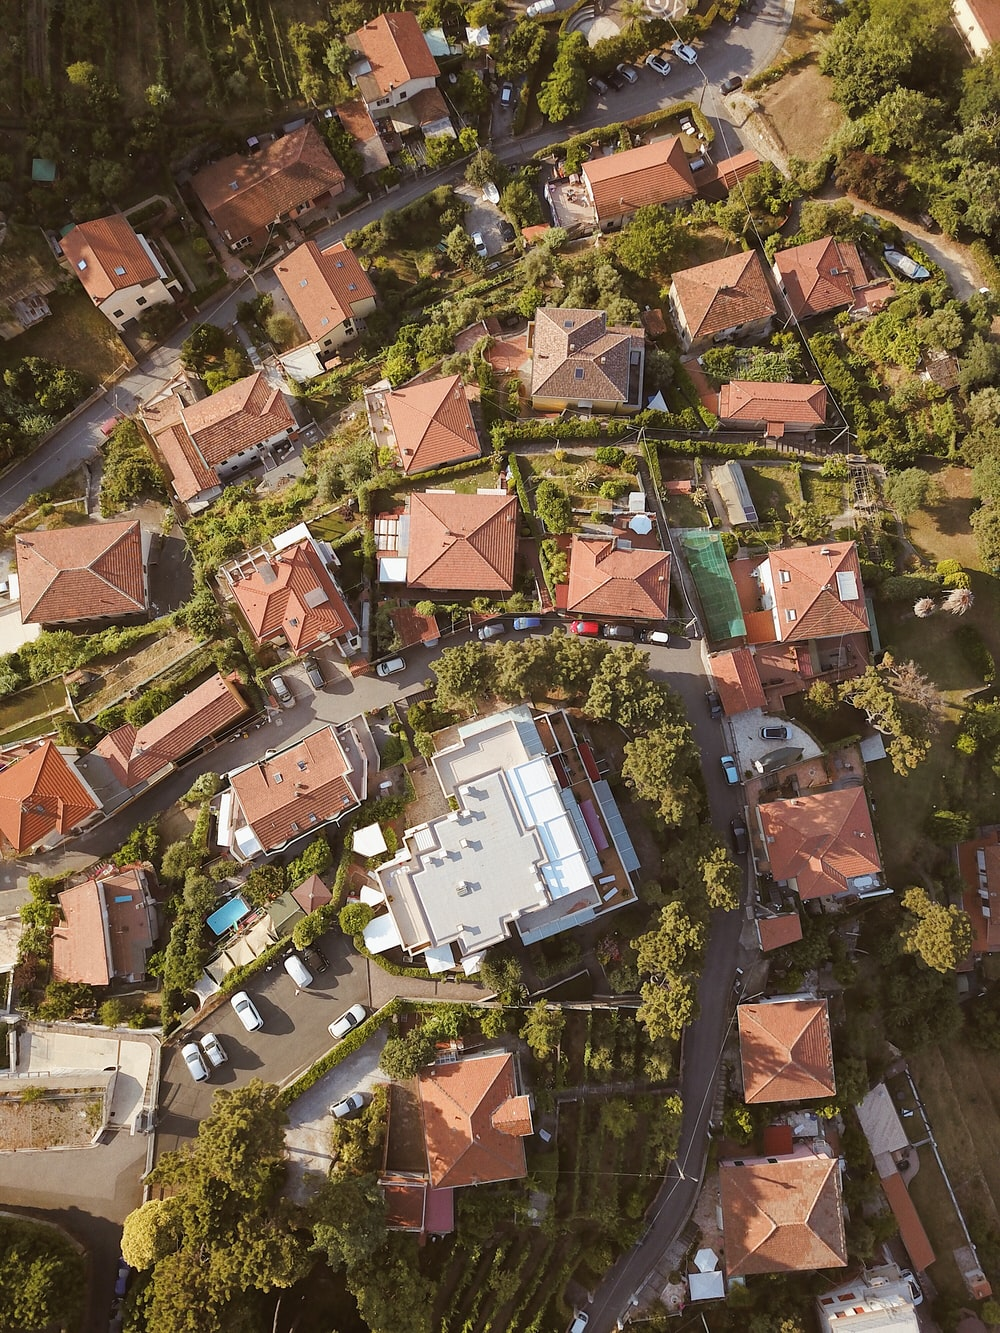 aerial photo of brown buildings and trees